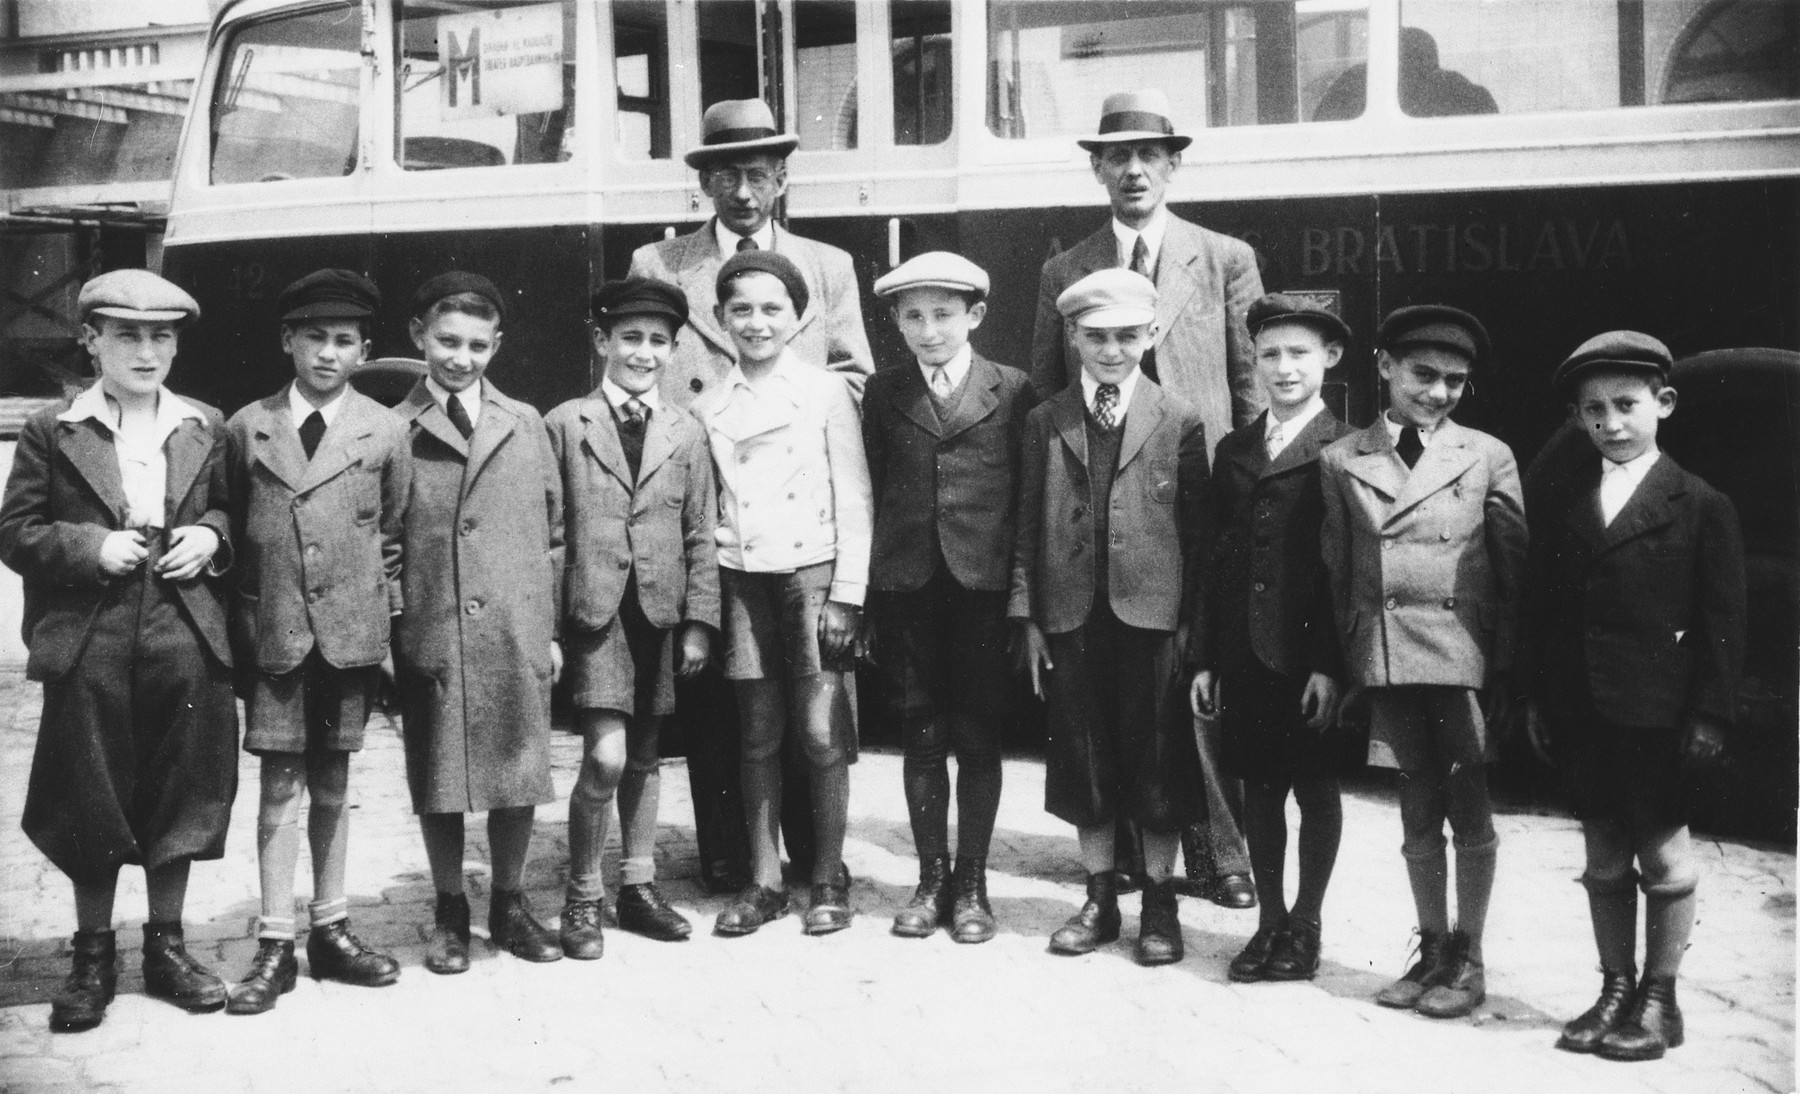 A group of boys from Bratislava prepares to leave for England on a Kindertransport.  Those pictured include Kurt Stern (second from left), Harry Stern (fourth from left).  Standing in the back are Mr. Turk on the left and Moses Stern on the right.